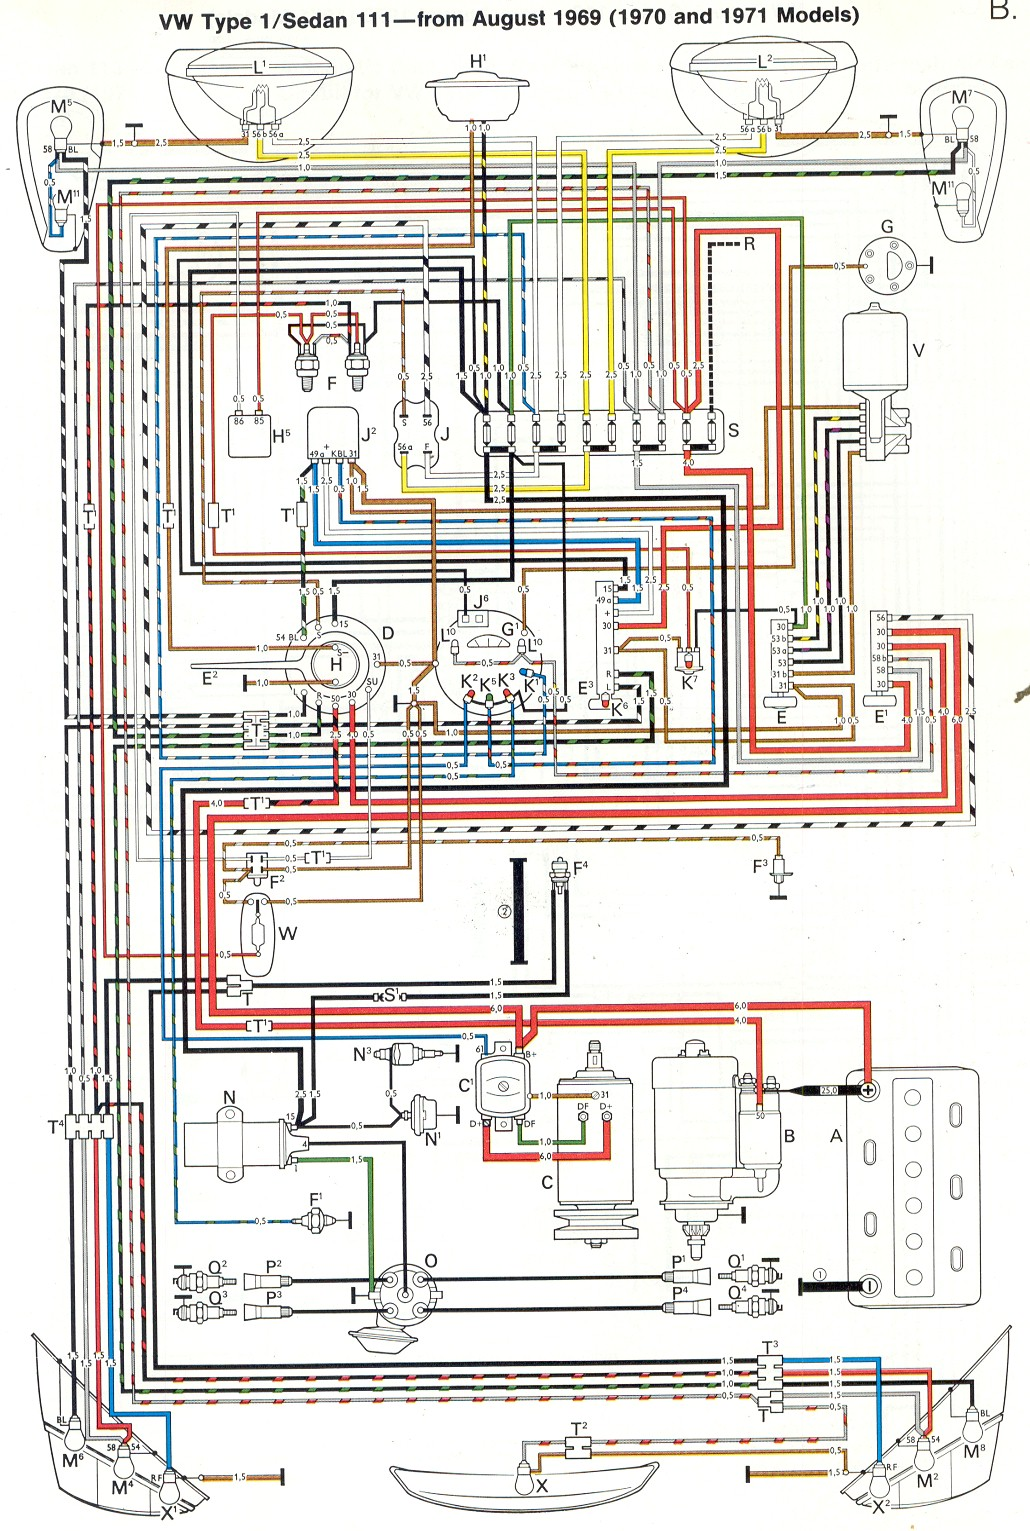 1972 Vw Wiring Diagram FULL Version HD Quality Wiring Diagram -  THILDIAGRAM.LABO-WEB.FRthildiagram.labo-web.fr